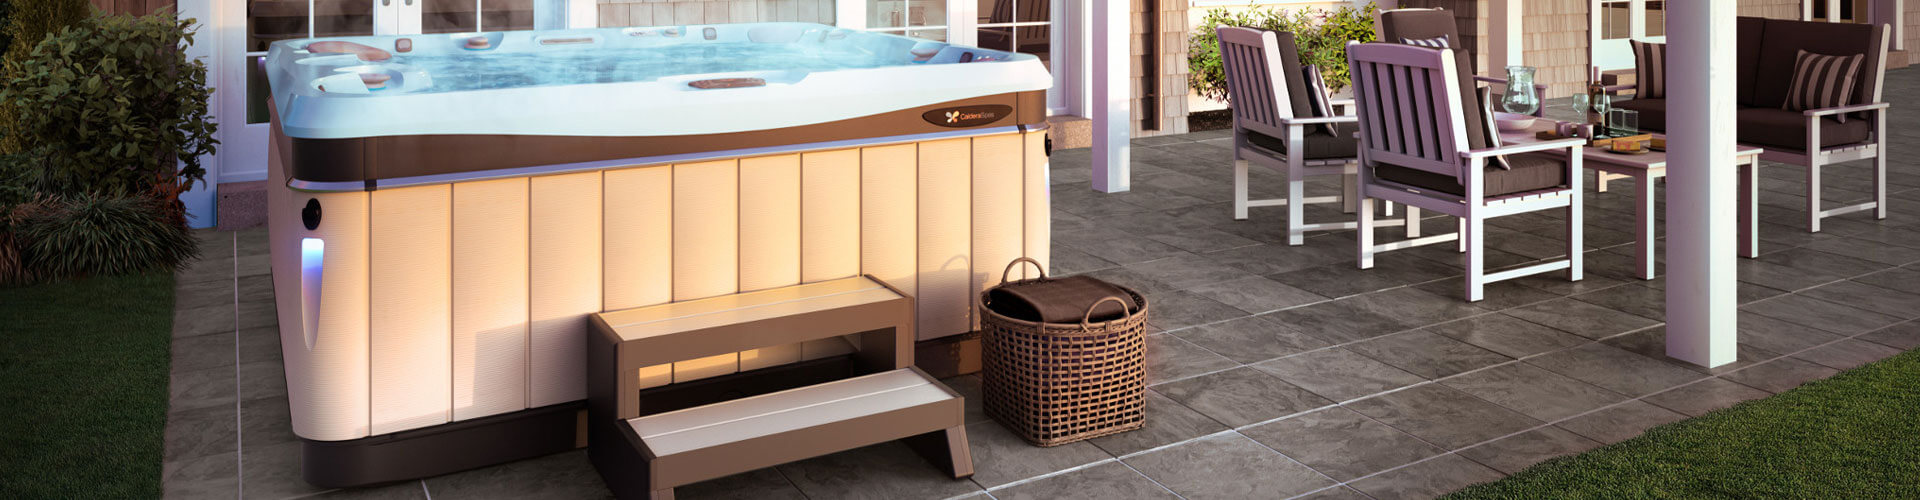 Improve Sleep with Regular Hot Water Hydrotherapy, Hot Tubs Lennox, SD